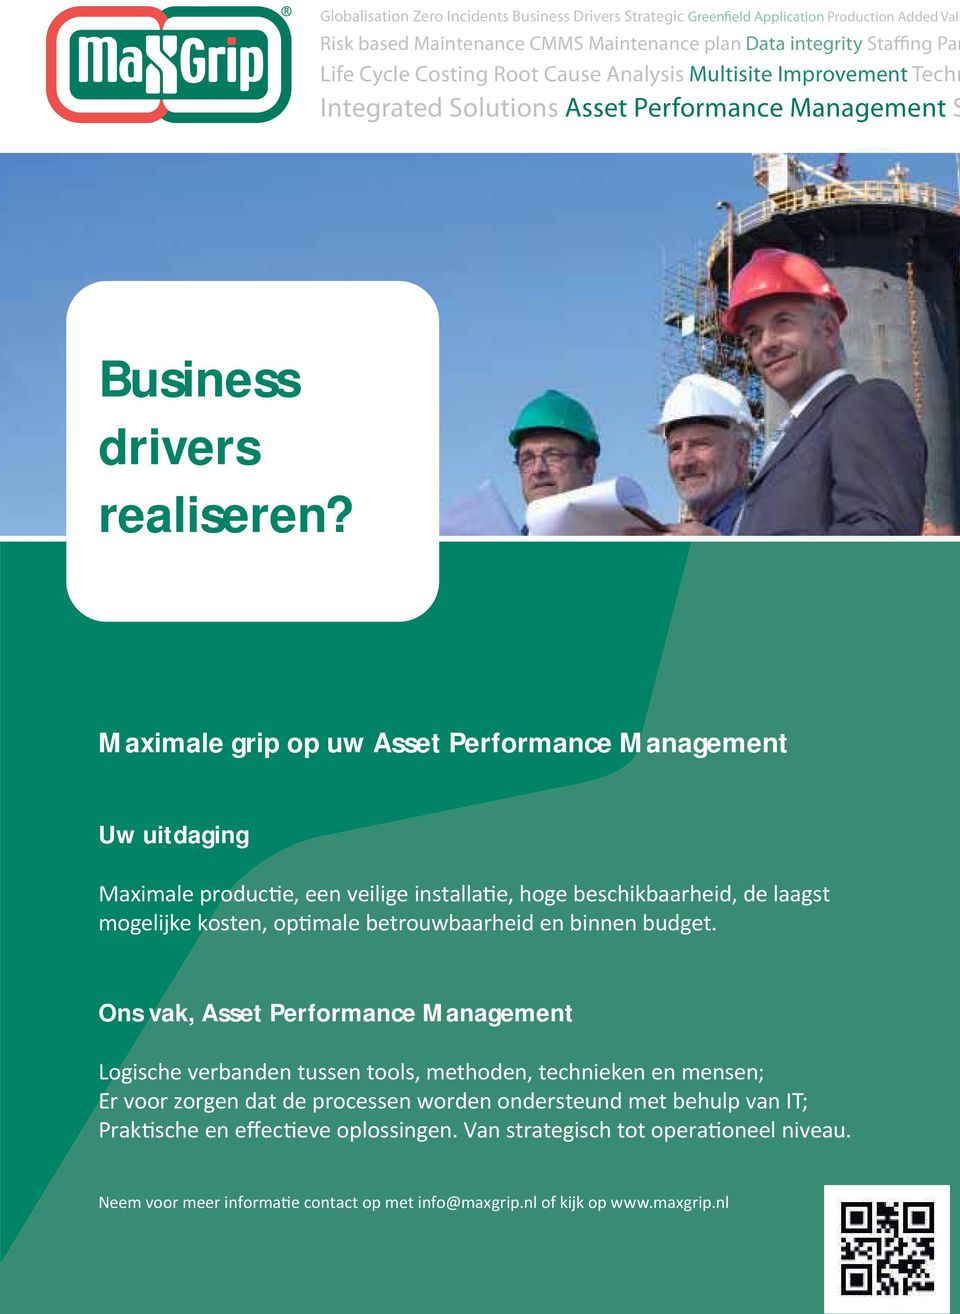 Analysis Multisite Improvement Techn Integrated Solutions Asset Performance Management S Business drivers